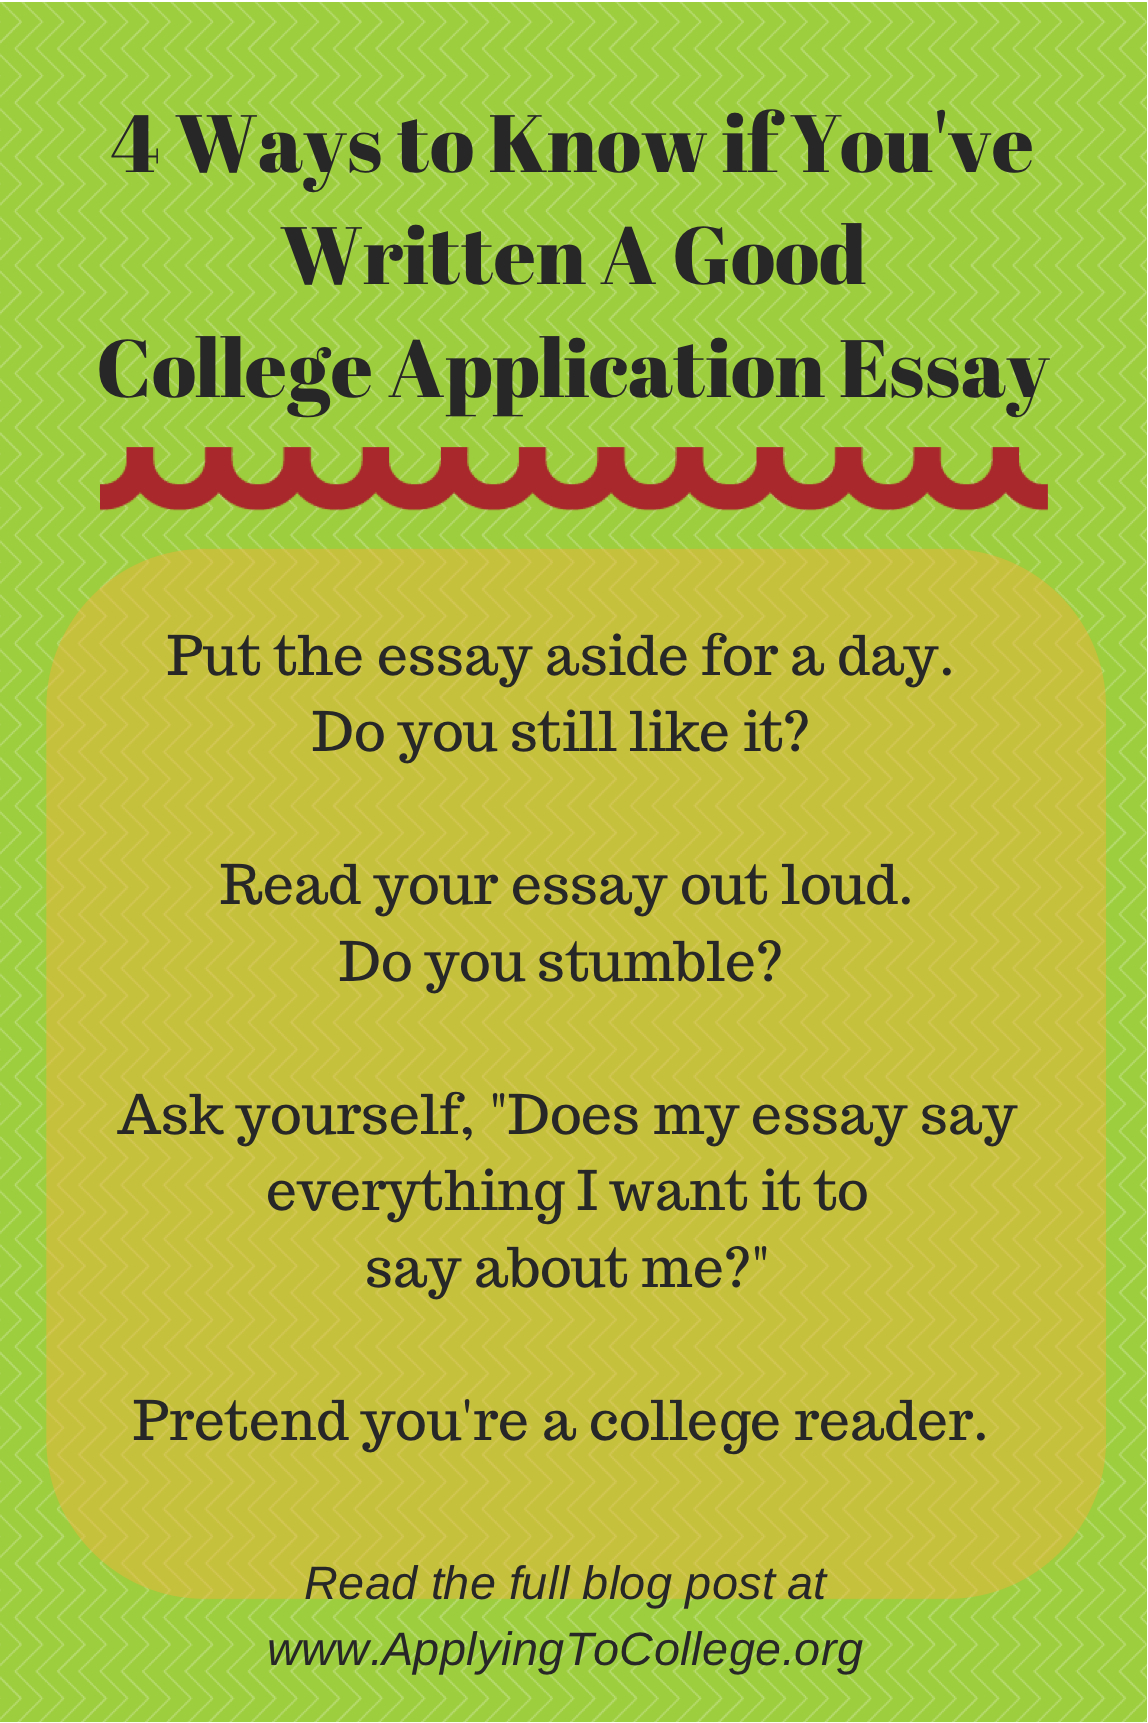 peer review my essay